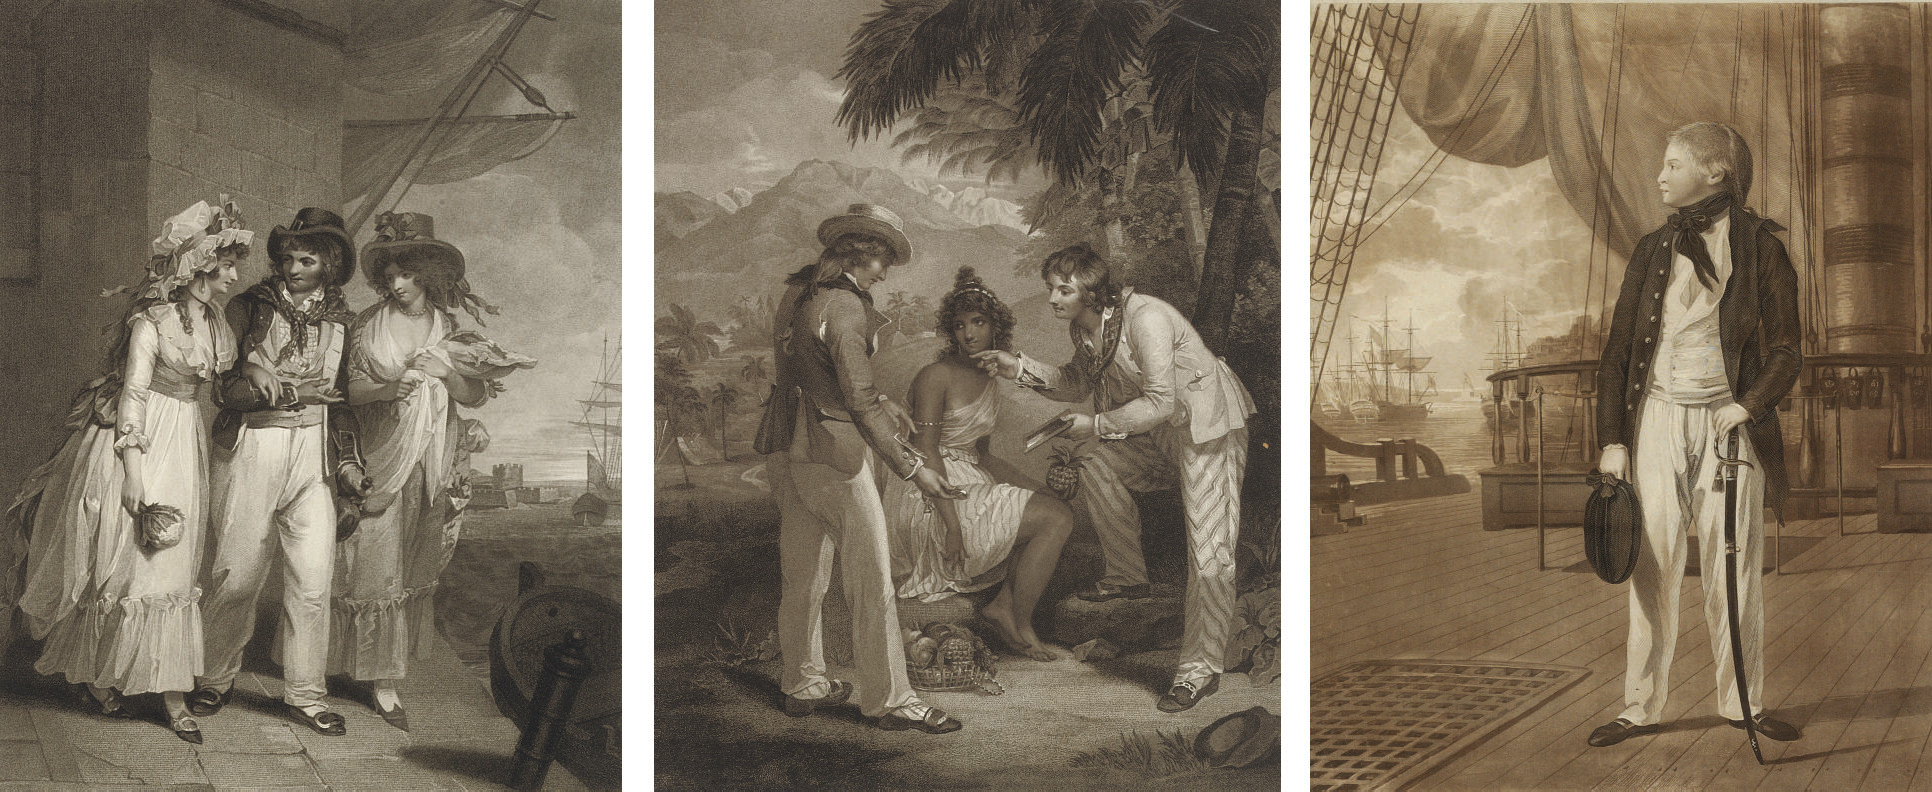 British Plenty; and Scarcity in India, by Charles Knight